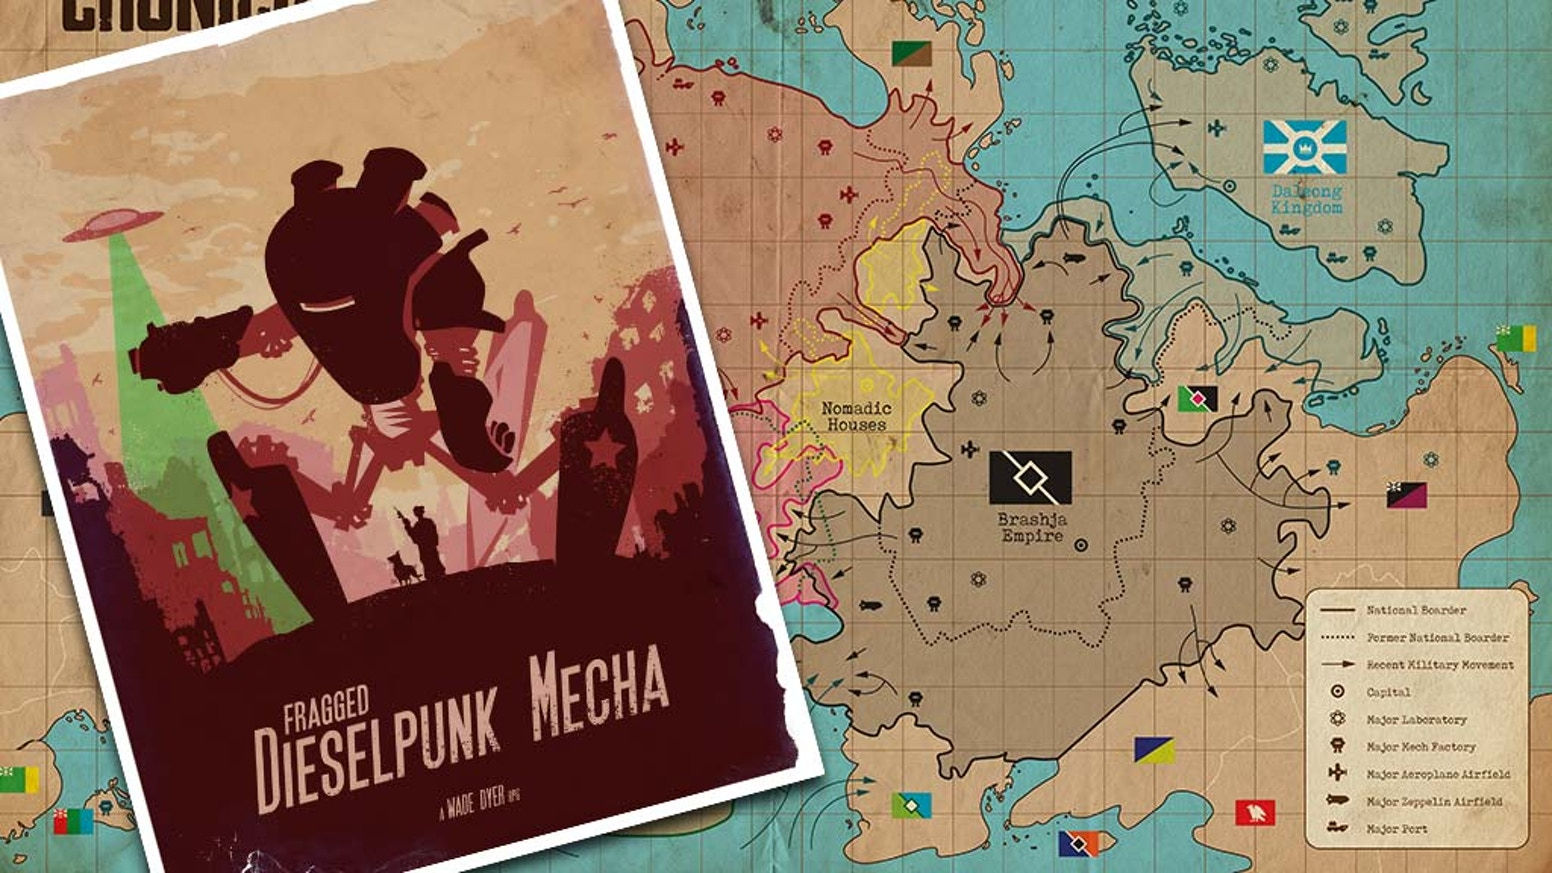 Set in an alternative 1940s history, 5 nations fight for control of Cronicia using massive dieselpunk mechs, espionage & propaganda.